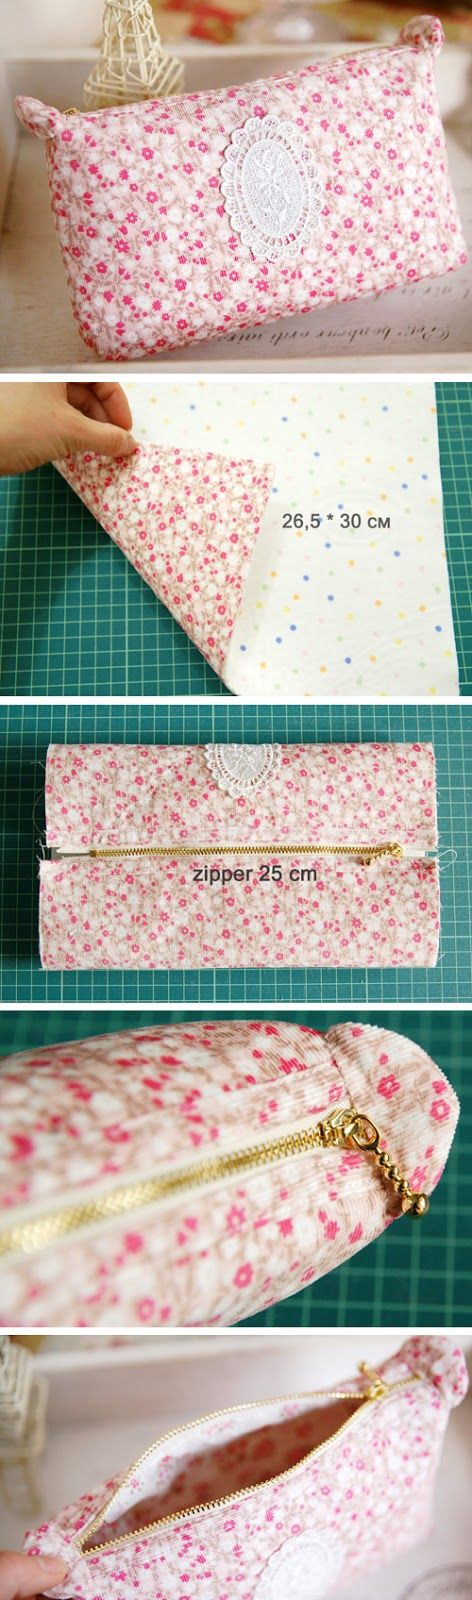 Tutorial: How to Sew a Cosmetic Bag   http://www.handmadiya.com/2016/02/make-up-bag-tutorial.html